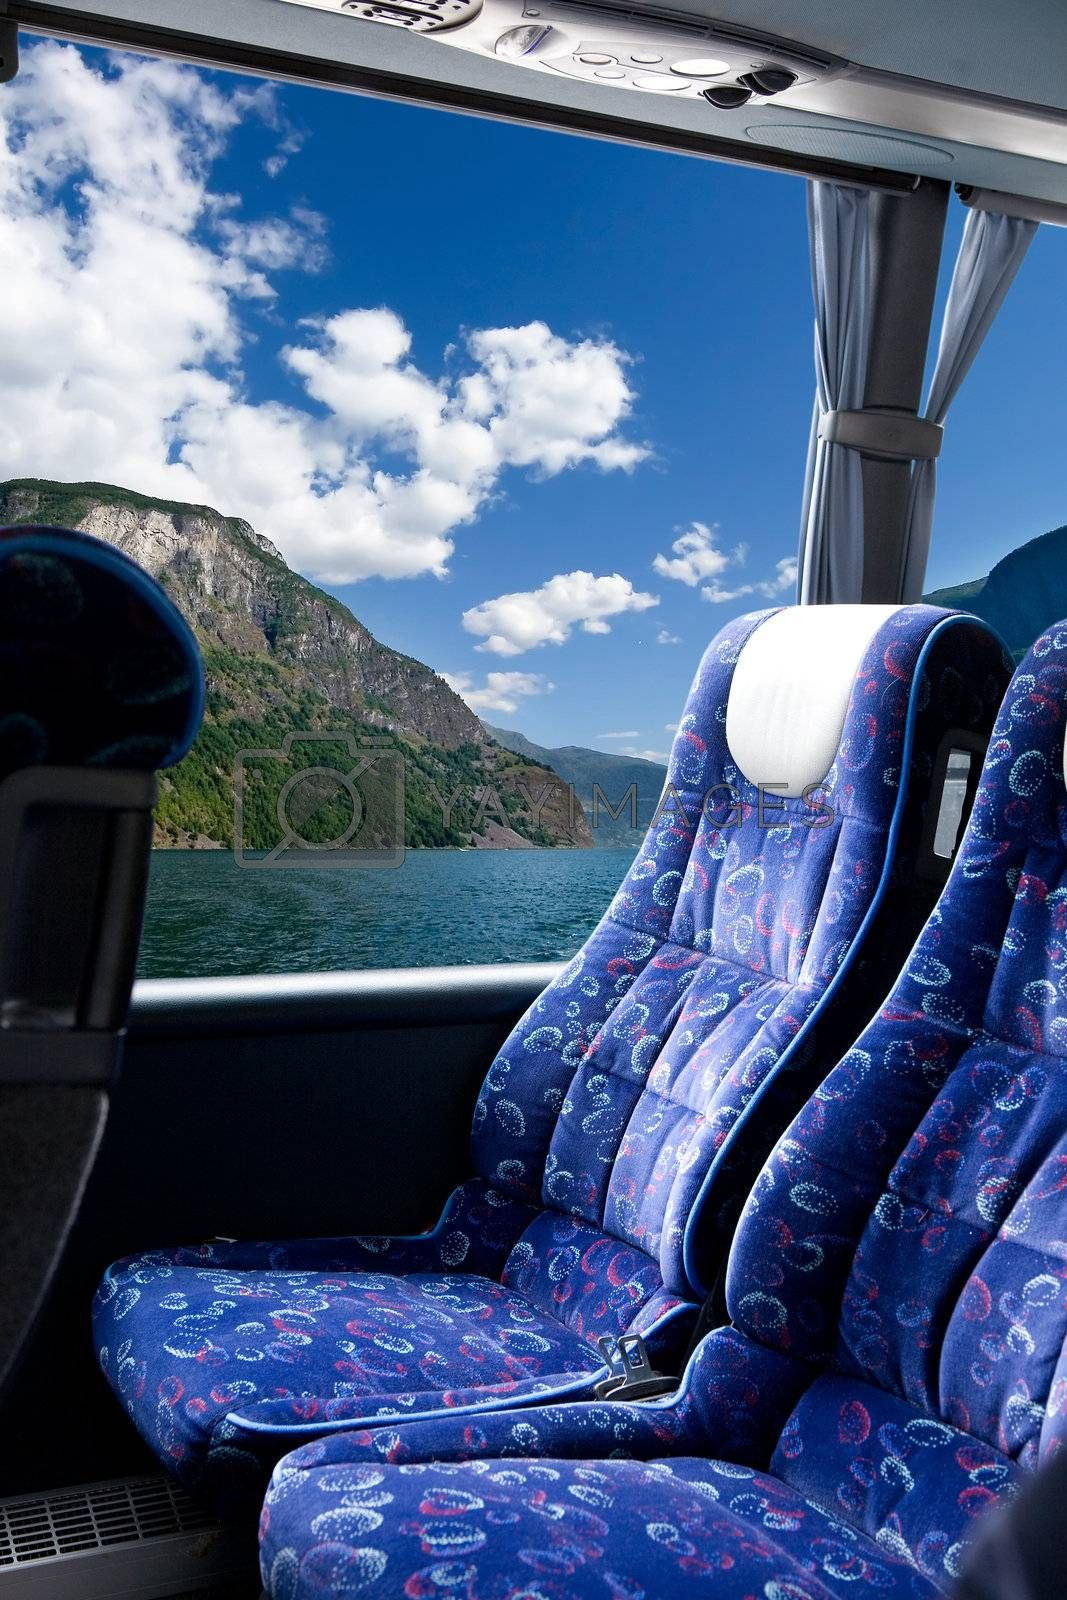 A fjord view from a bus